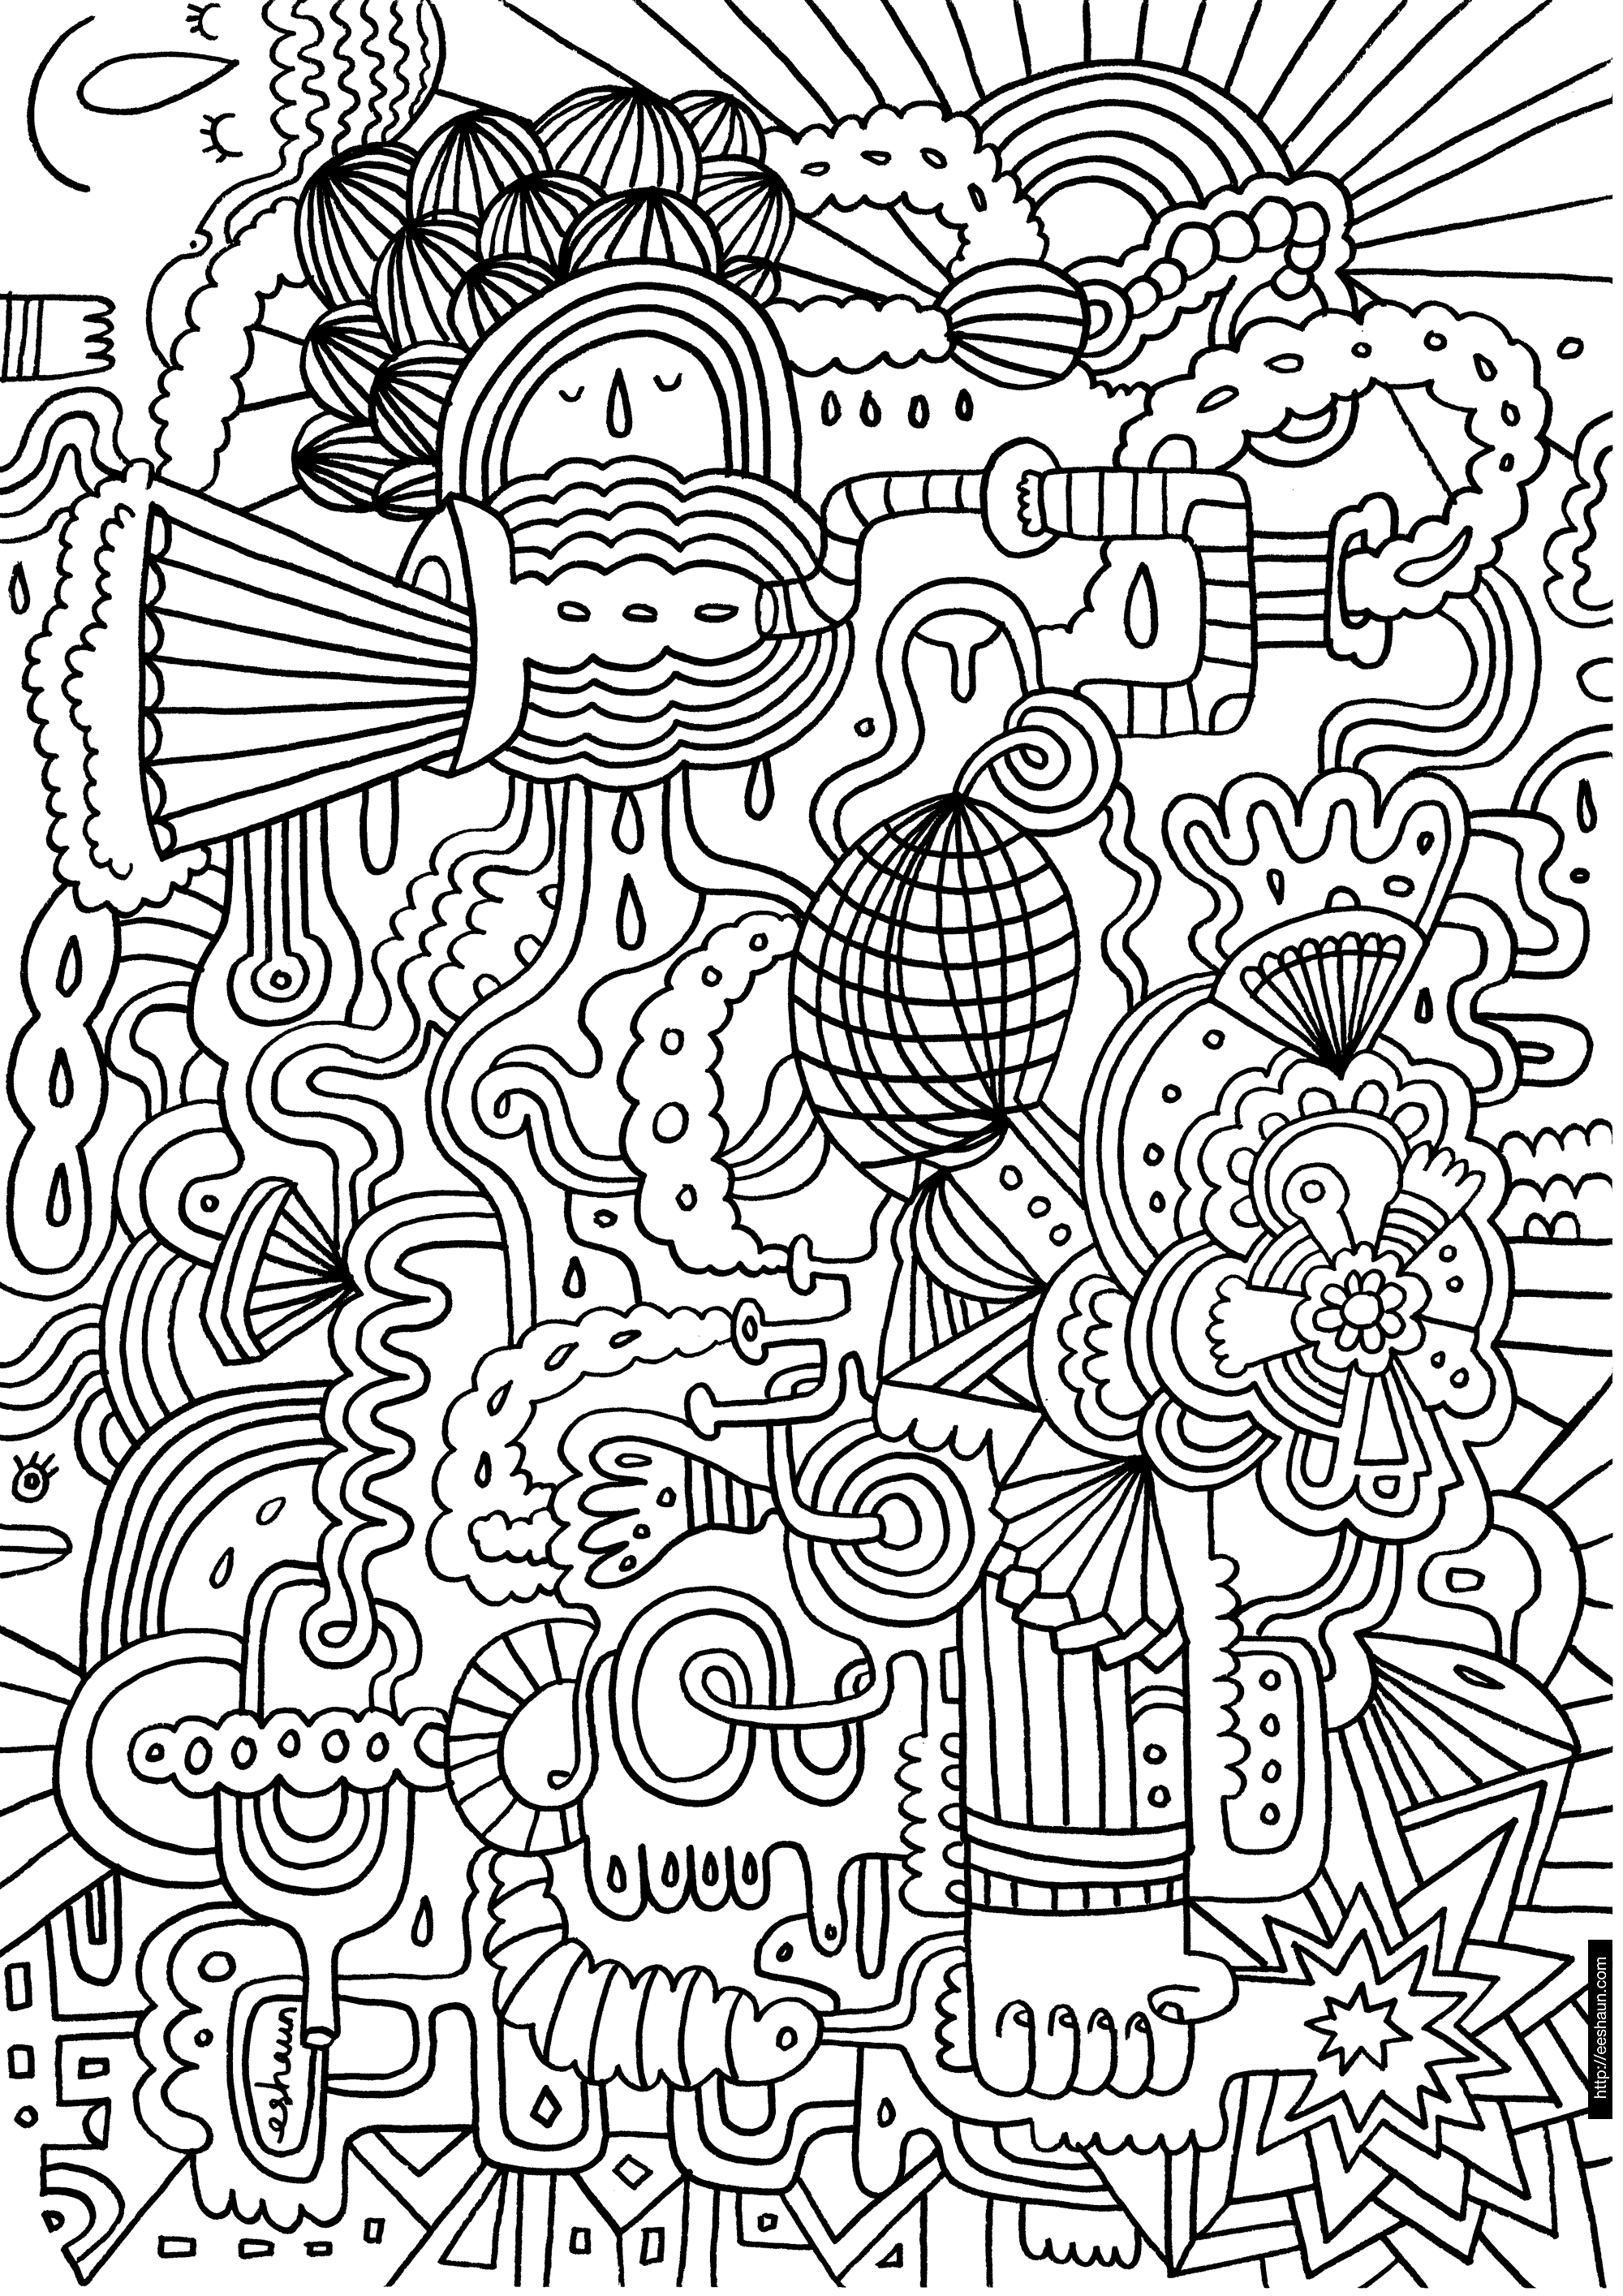 Large Coloring Pages – With Color Book Pictures Also Printables Kids - Free Printable Murals